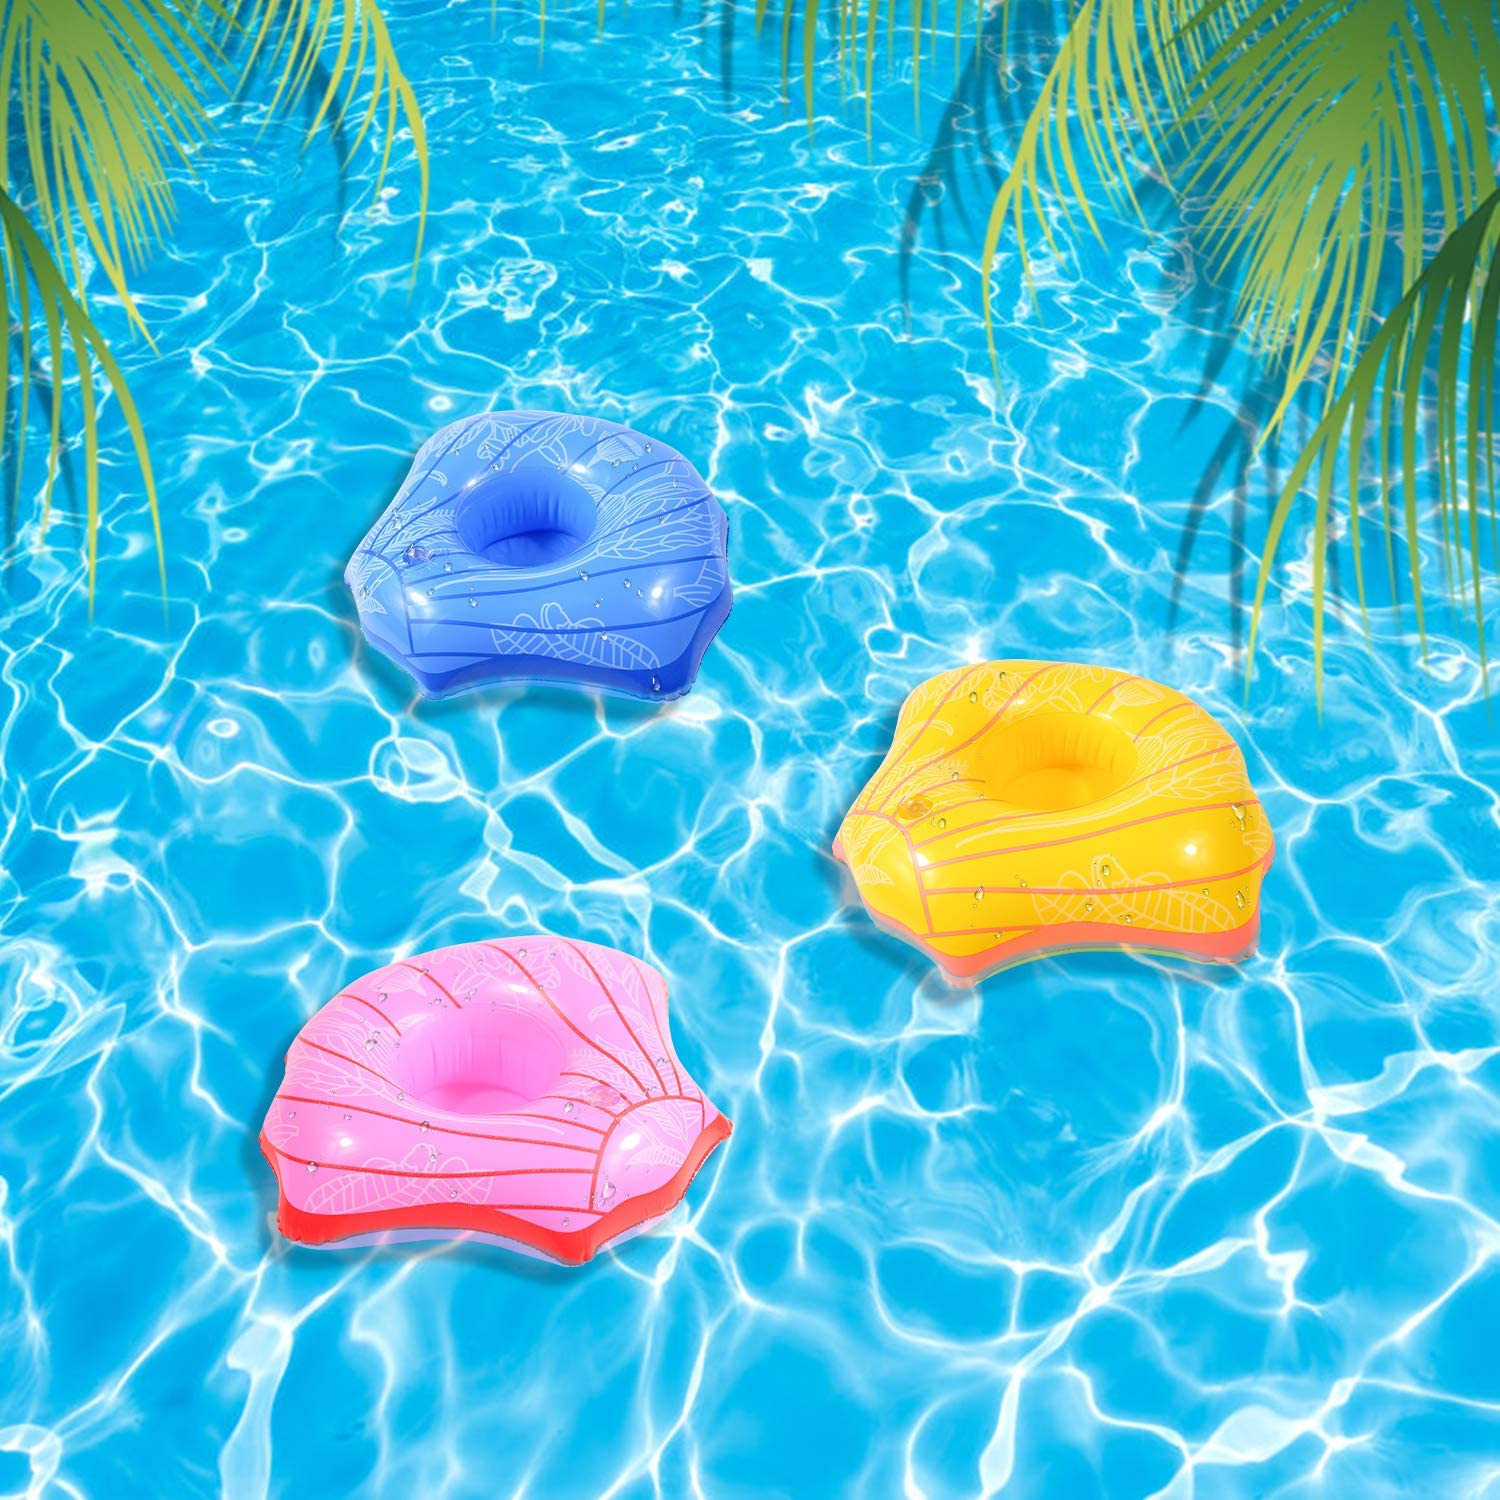 LUCUNSTAR 6PCS Shell Inflatable Drink Cup Holder Float Coasters Summer Style Adult Beach Swimming Pool Party Drink Cup Holder Toy Shell Cup Holder